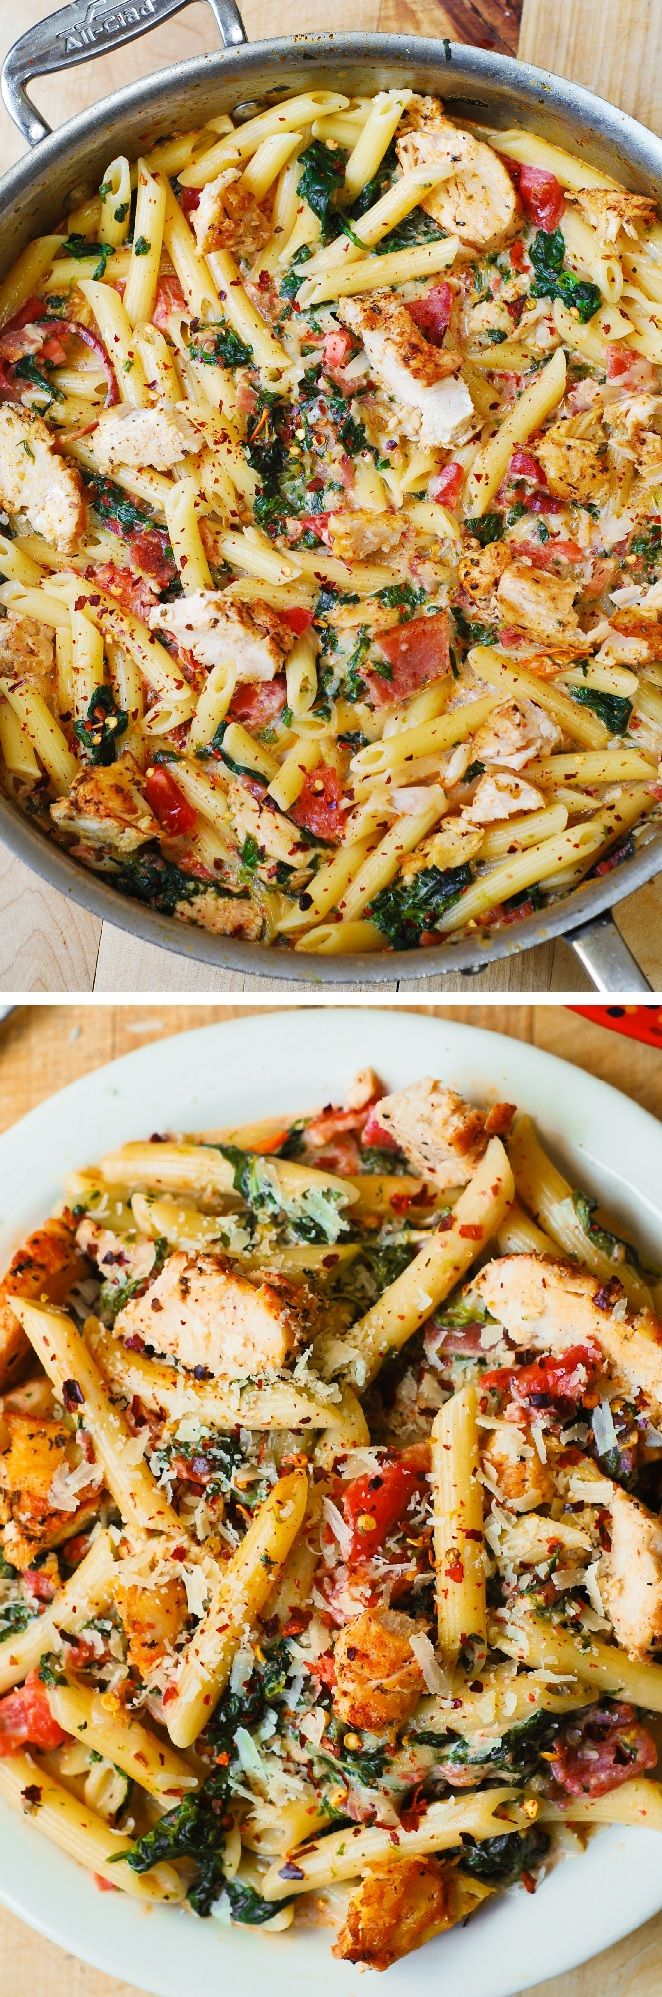 #Chicken and #Bacon #Pasta with Spinach and Tomatoes in Garlic Cream Sauce - Delicious creamy sauce perfectly blends together all the flavors: bacon, garlic, spices, tomatoes.